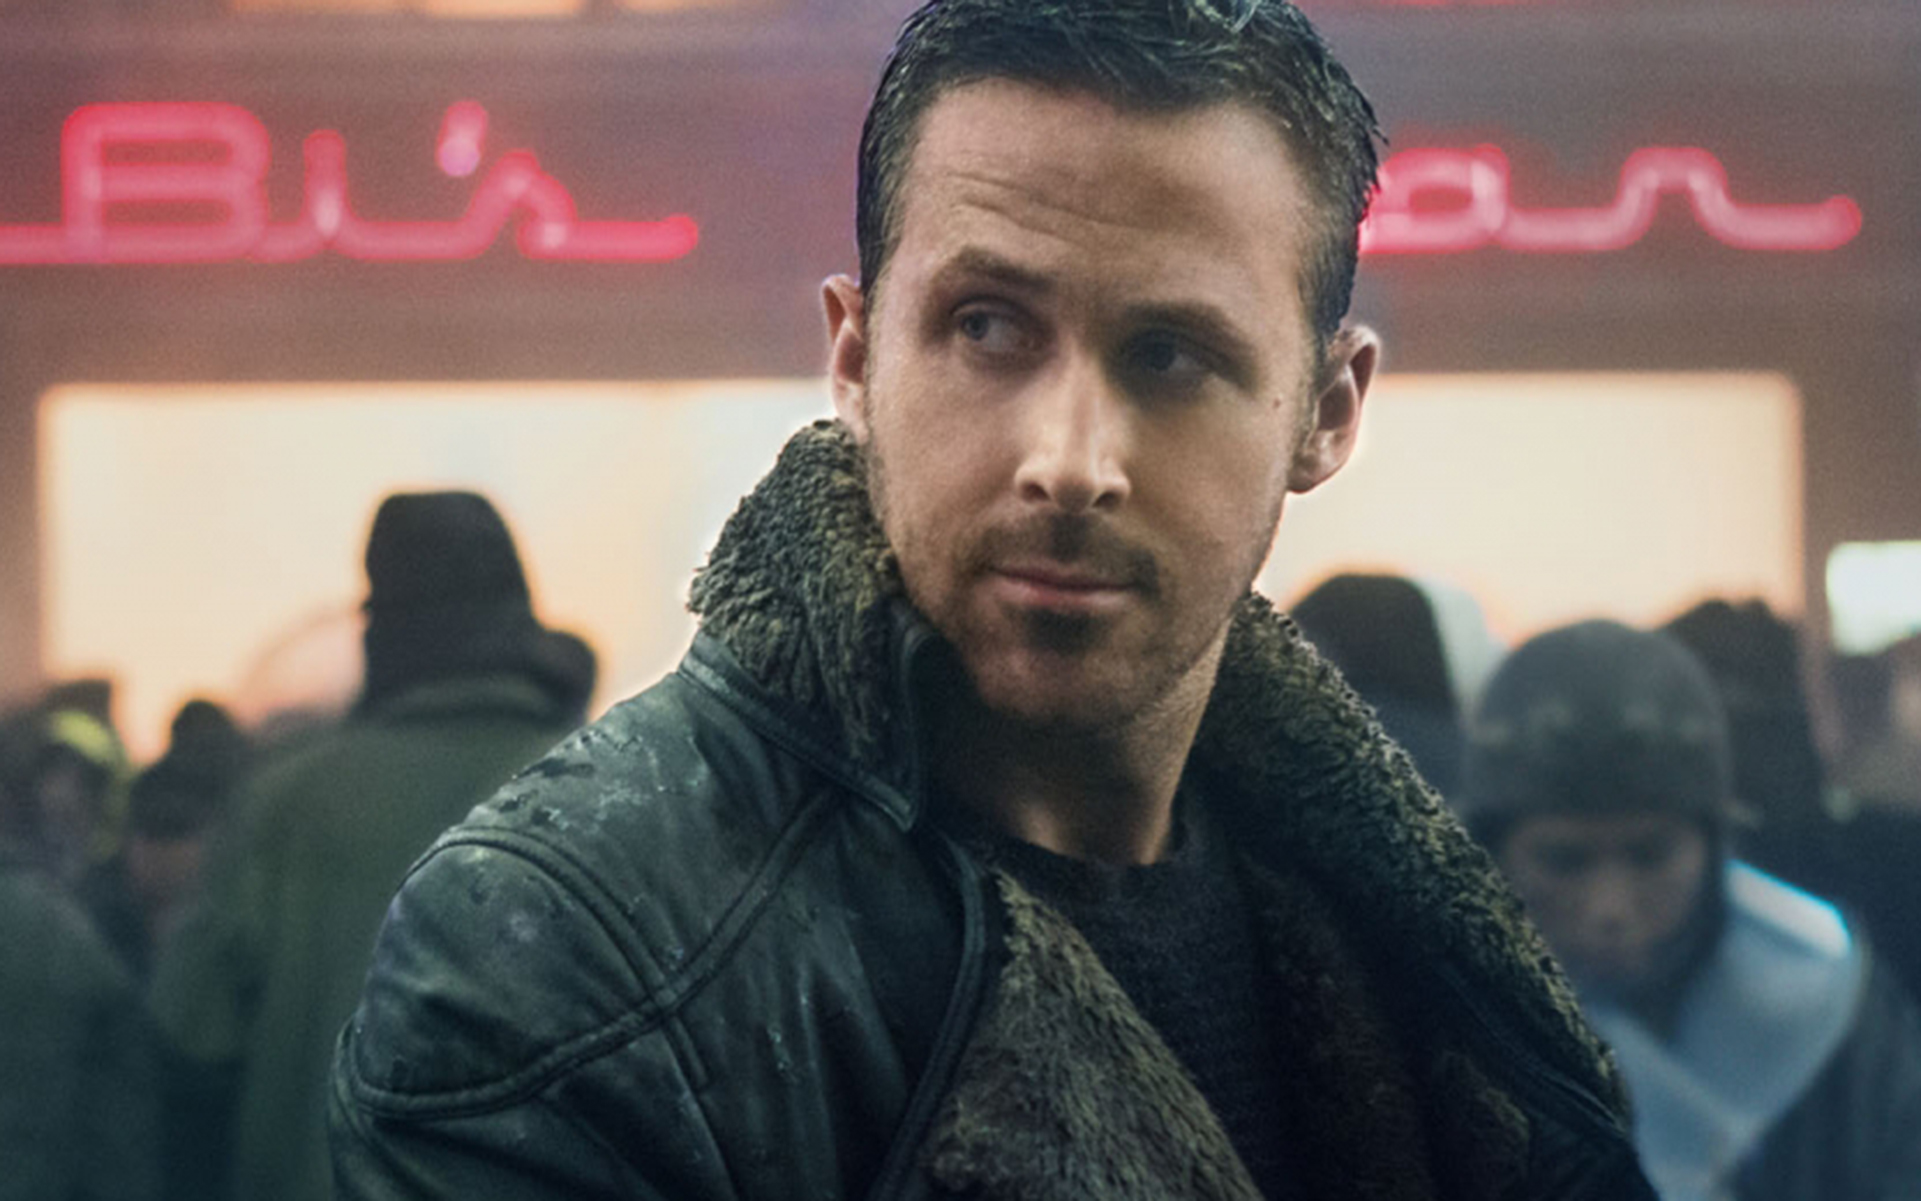 'Blade Runner 2049': Is It Worth the High?